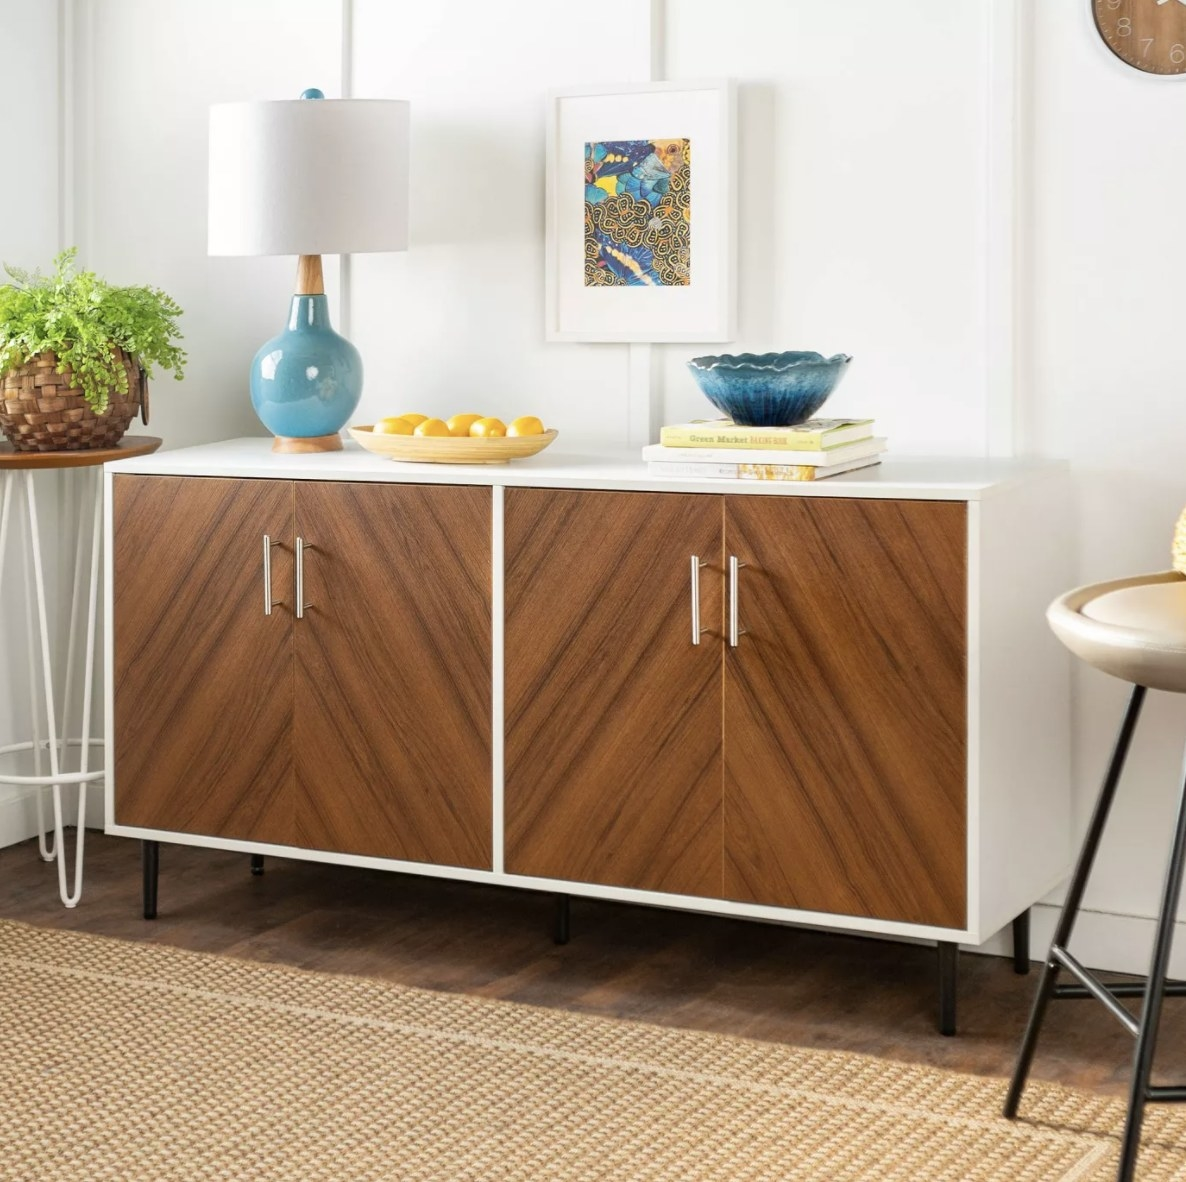 the storage buffet with wood doors, metal handles, and decorations on top of it